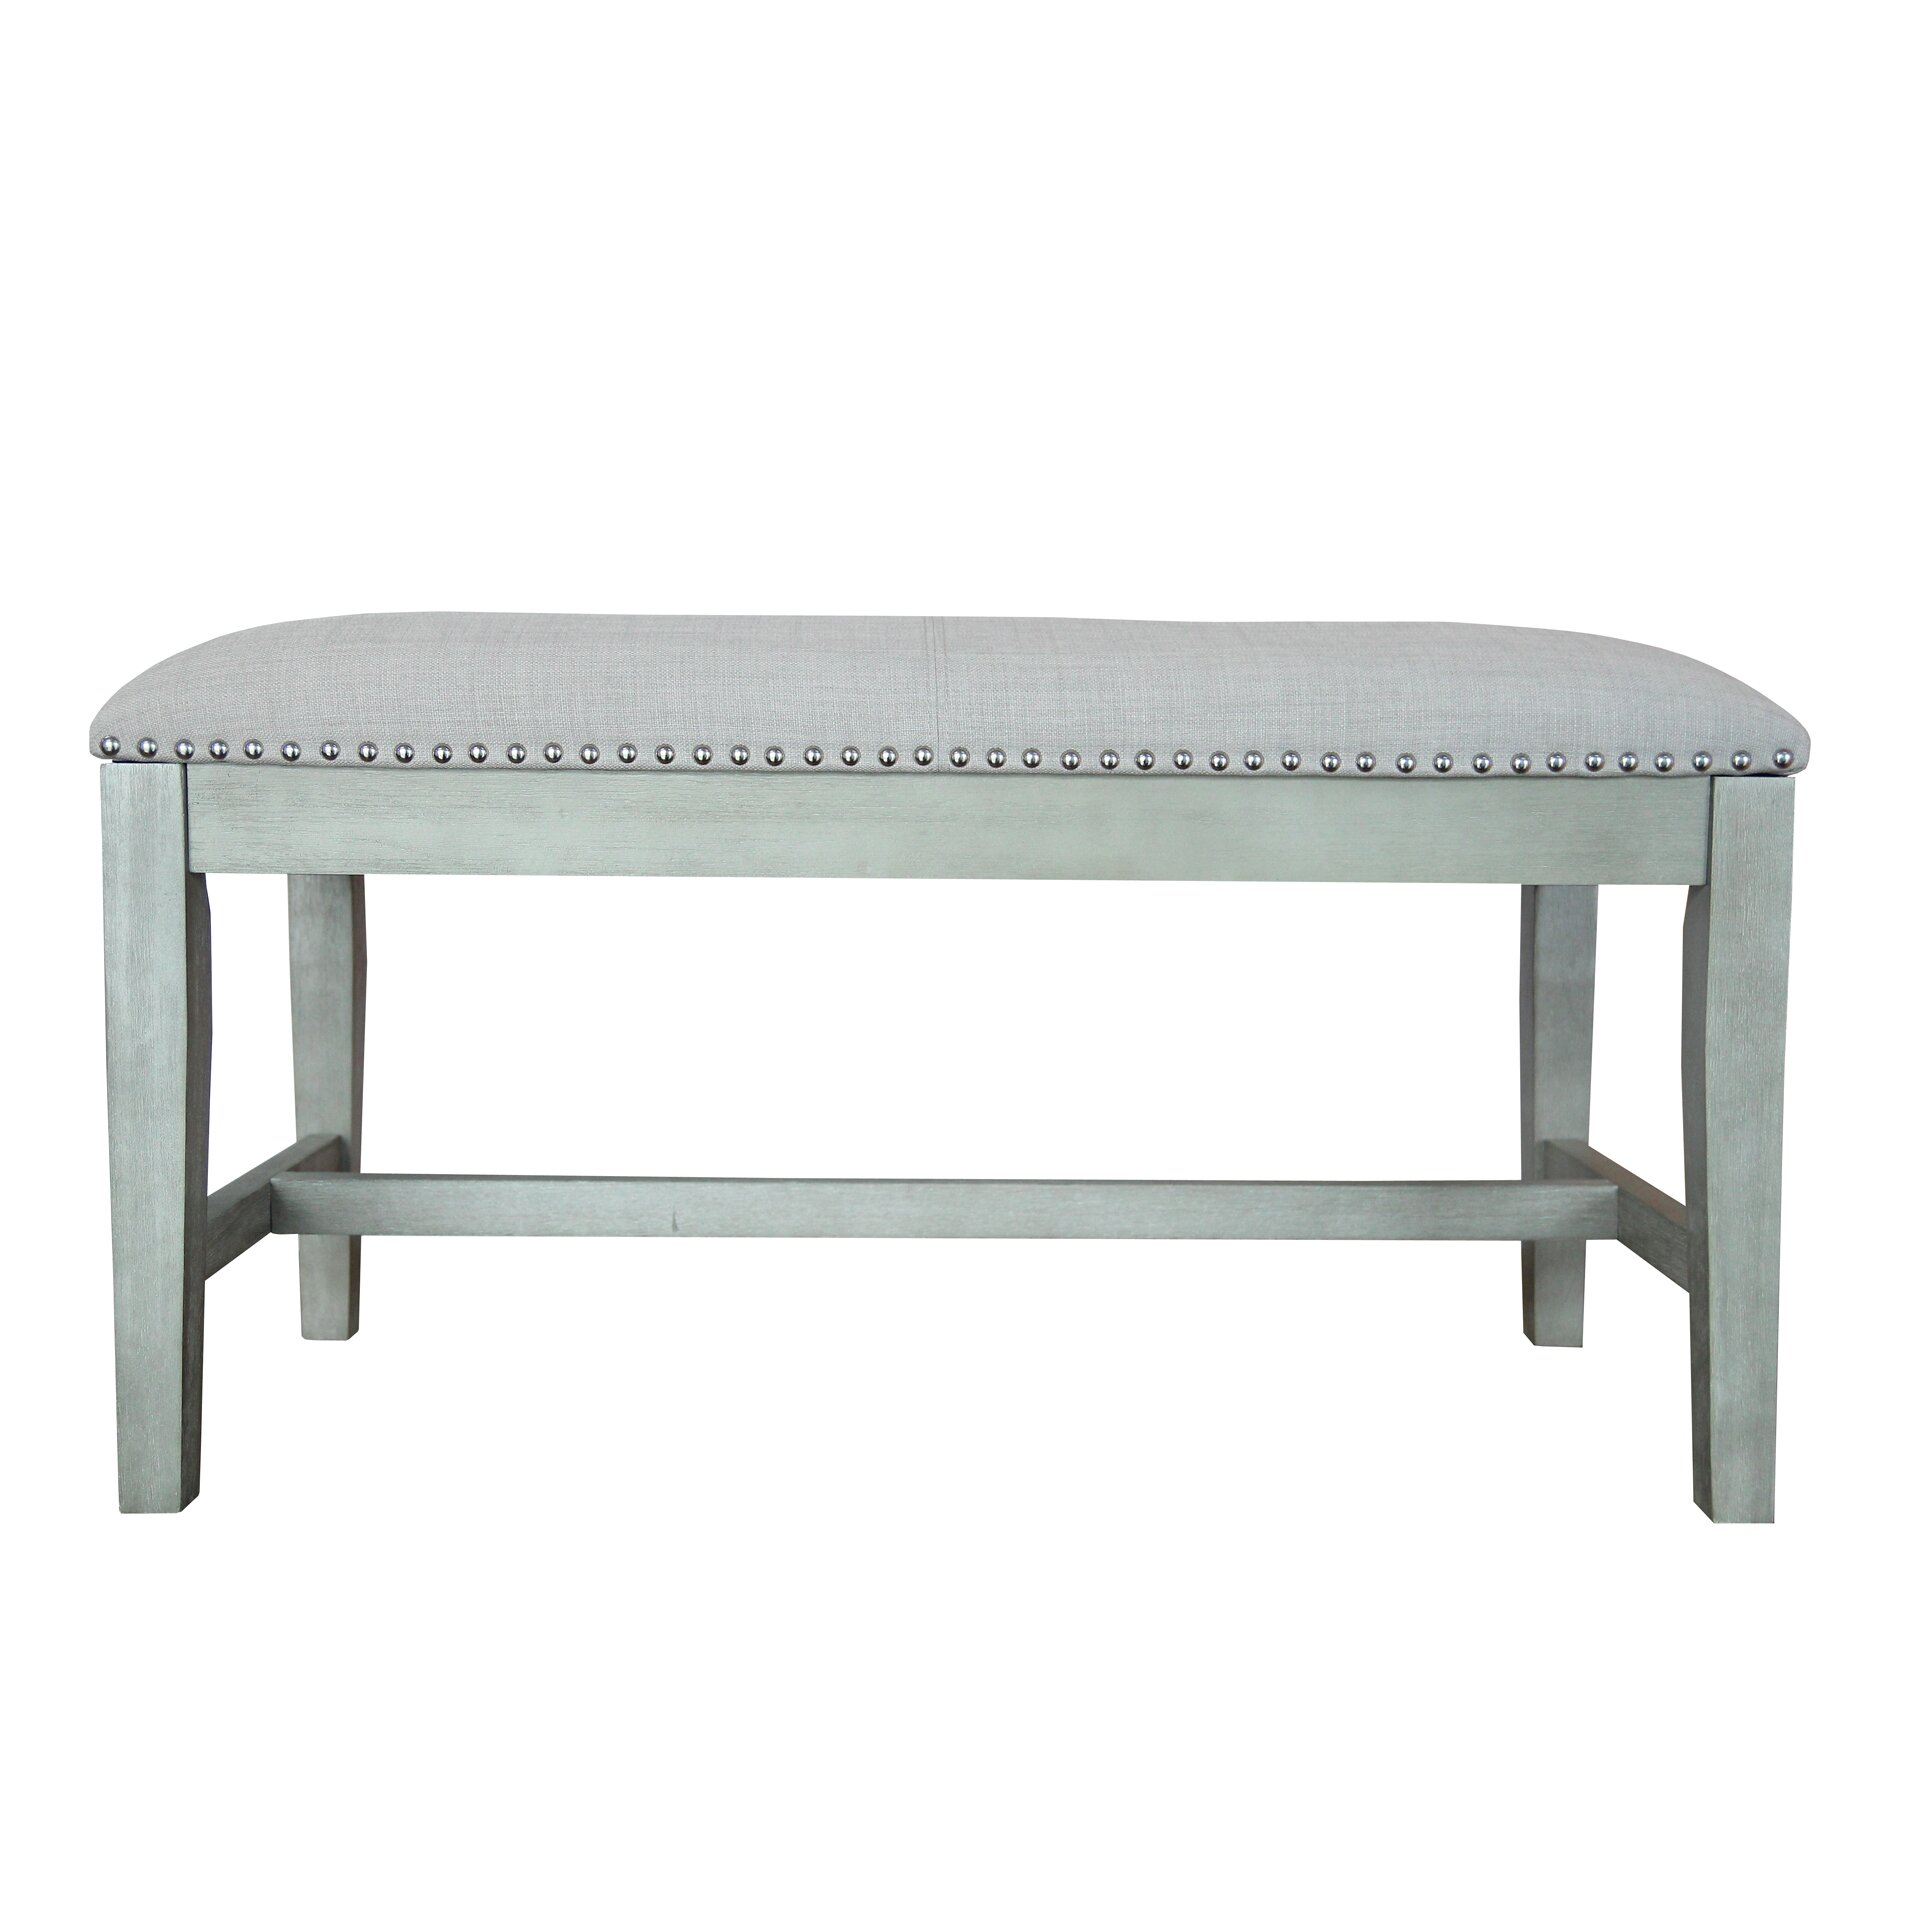 Bedroom Bench With Back ~ iQuomi.com